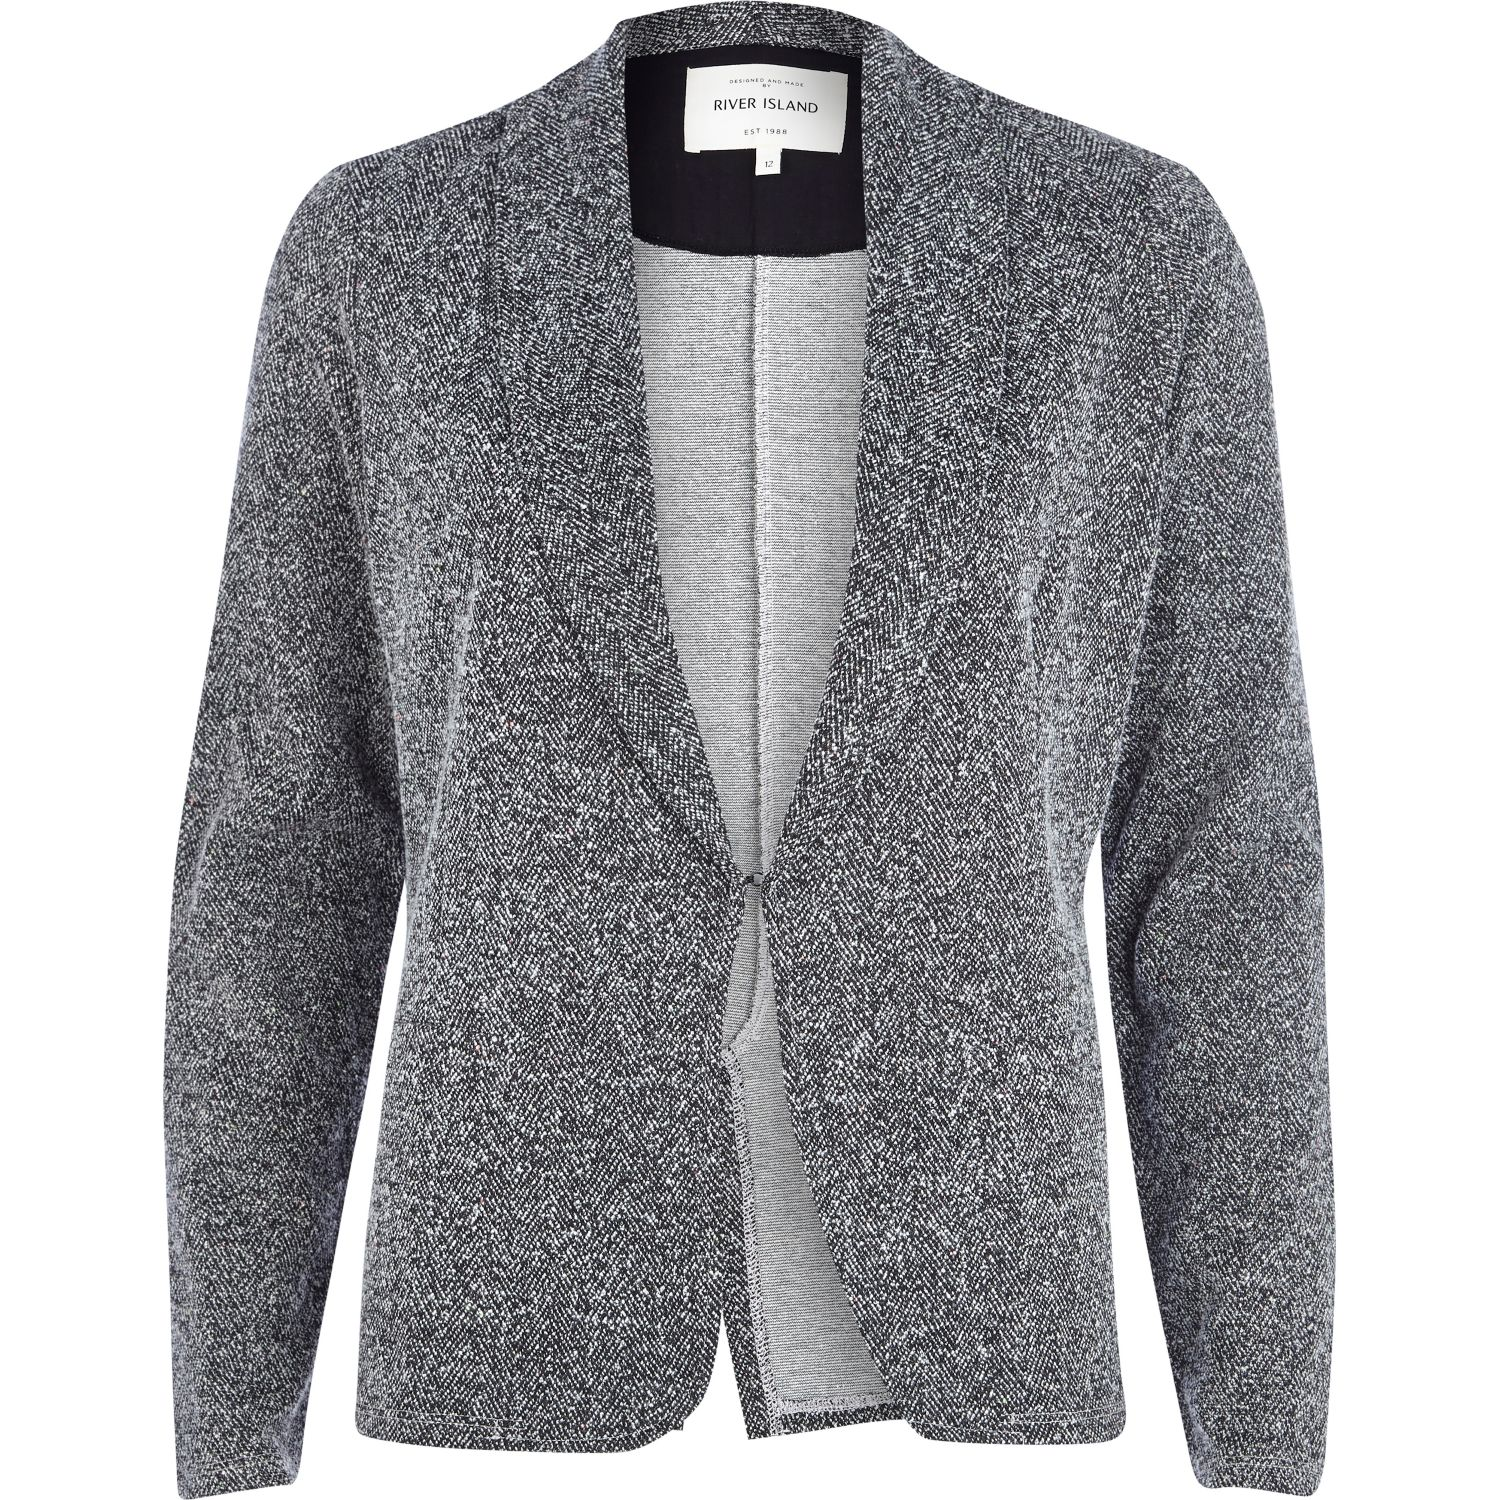 Grey tweed jersey blazer